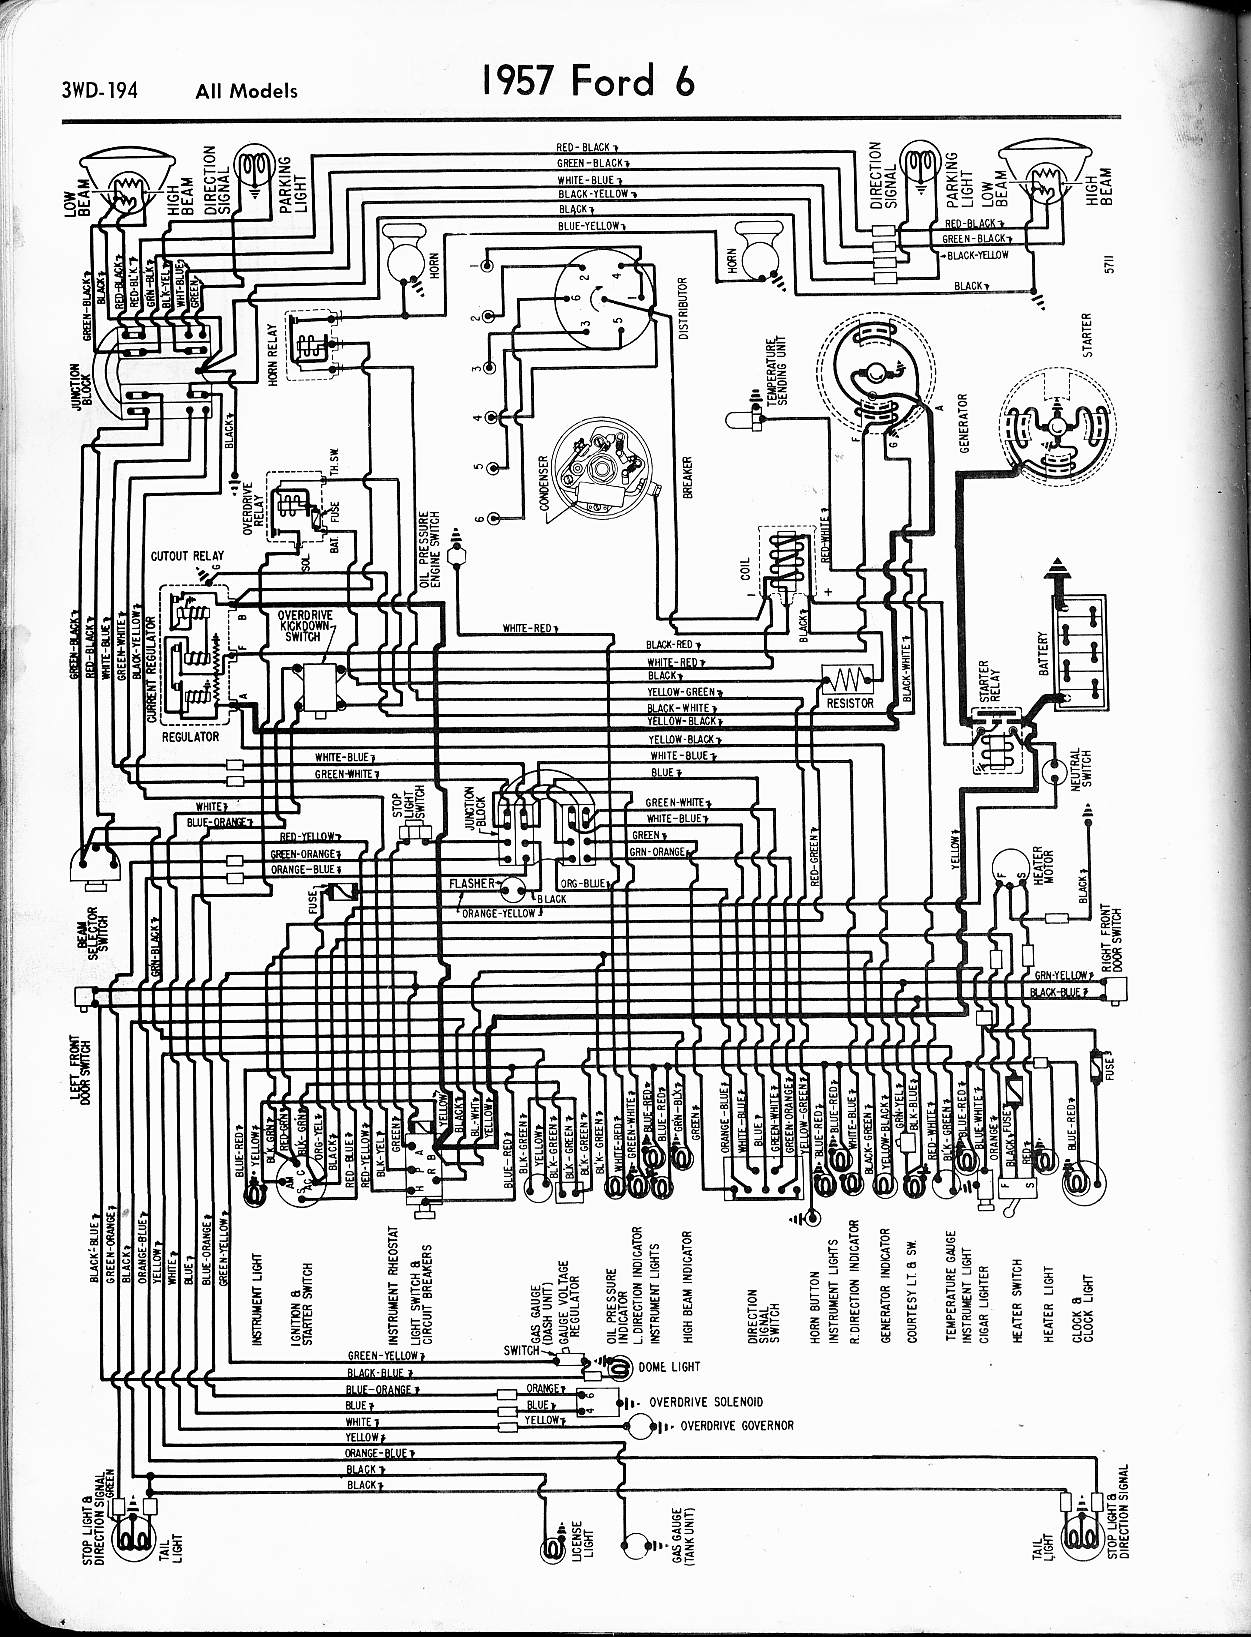 57 65 Ford Wiring Diagrams Bluebird Wiring Diagrams Ford Wiring Diagram